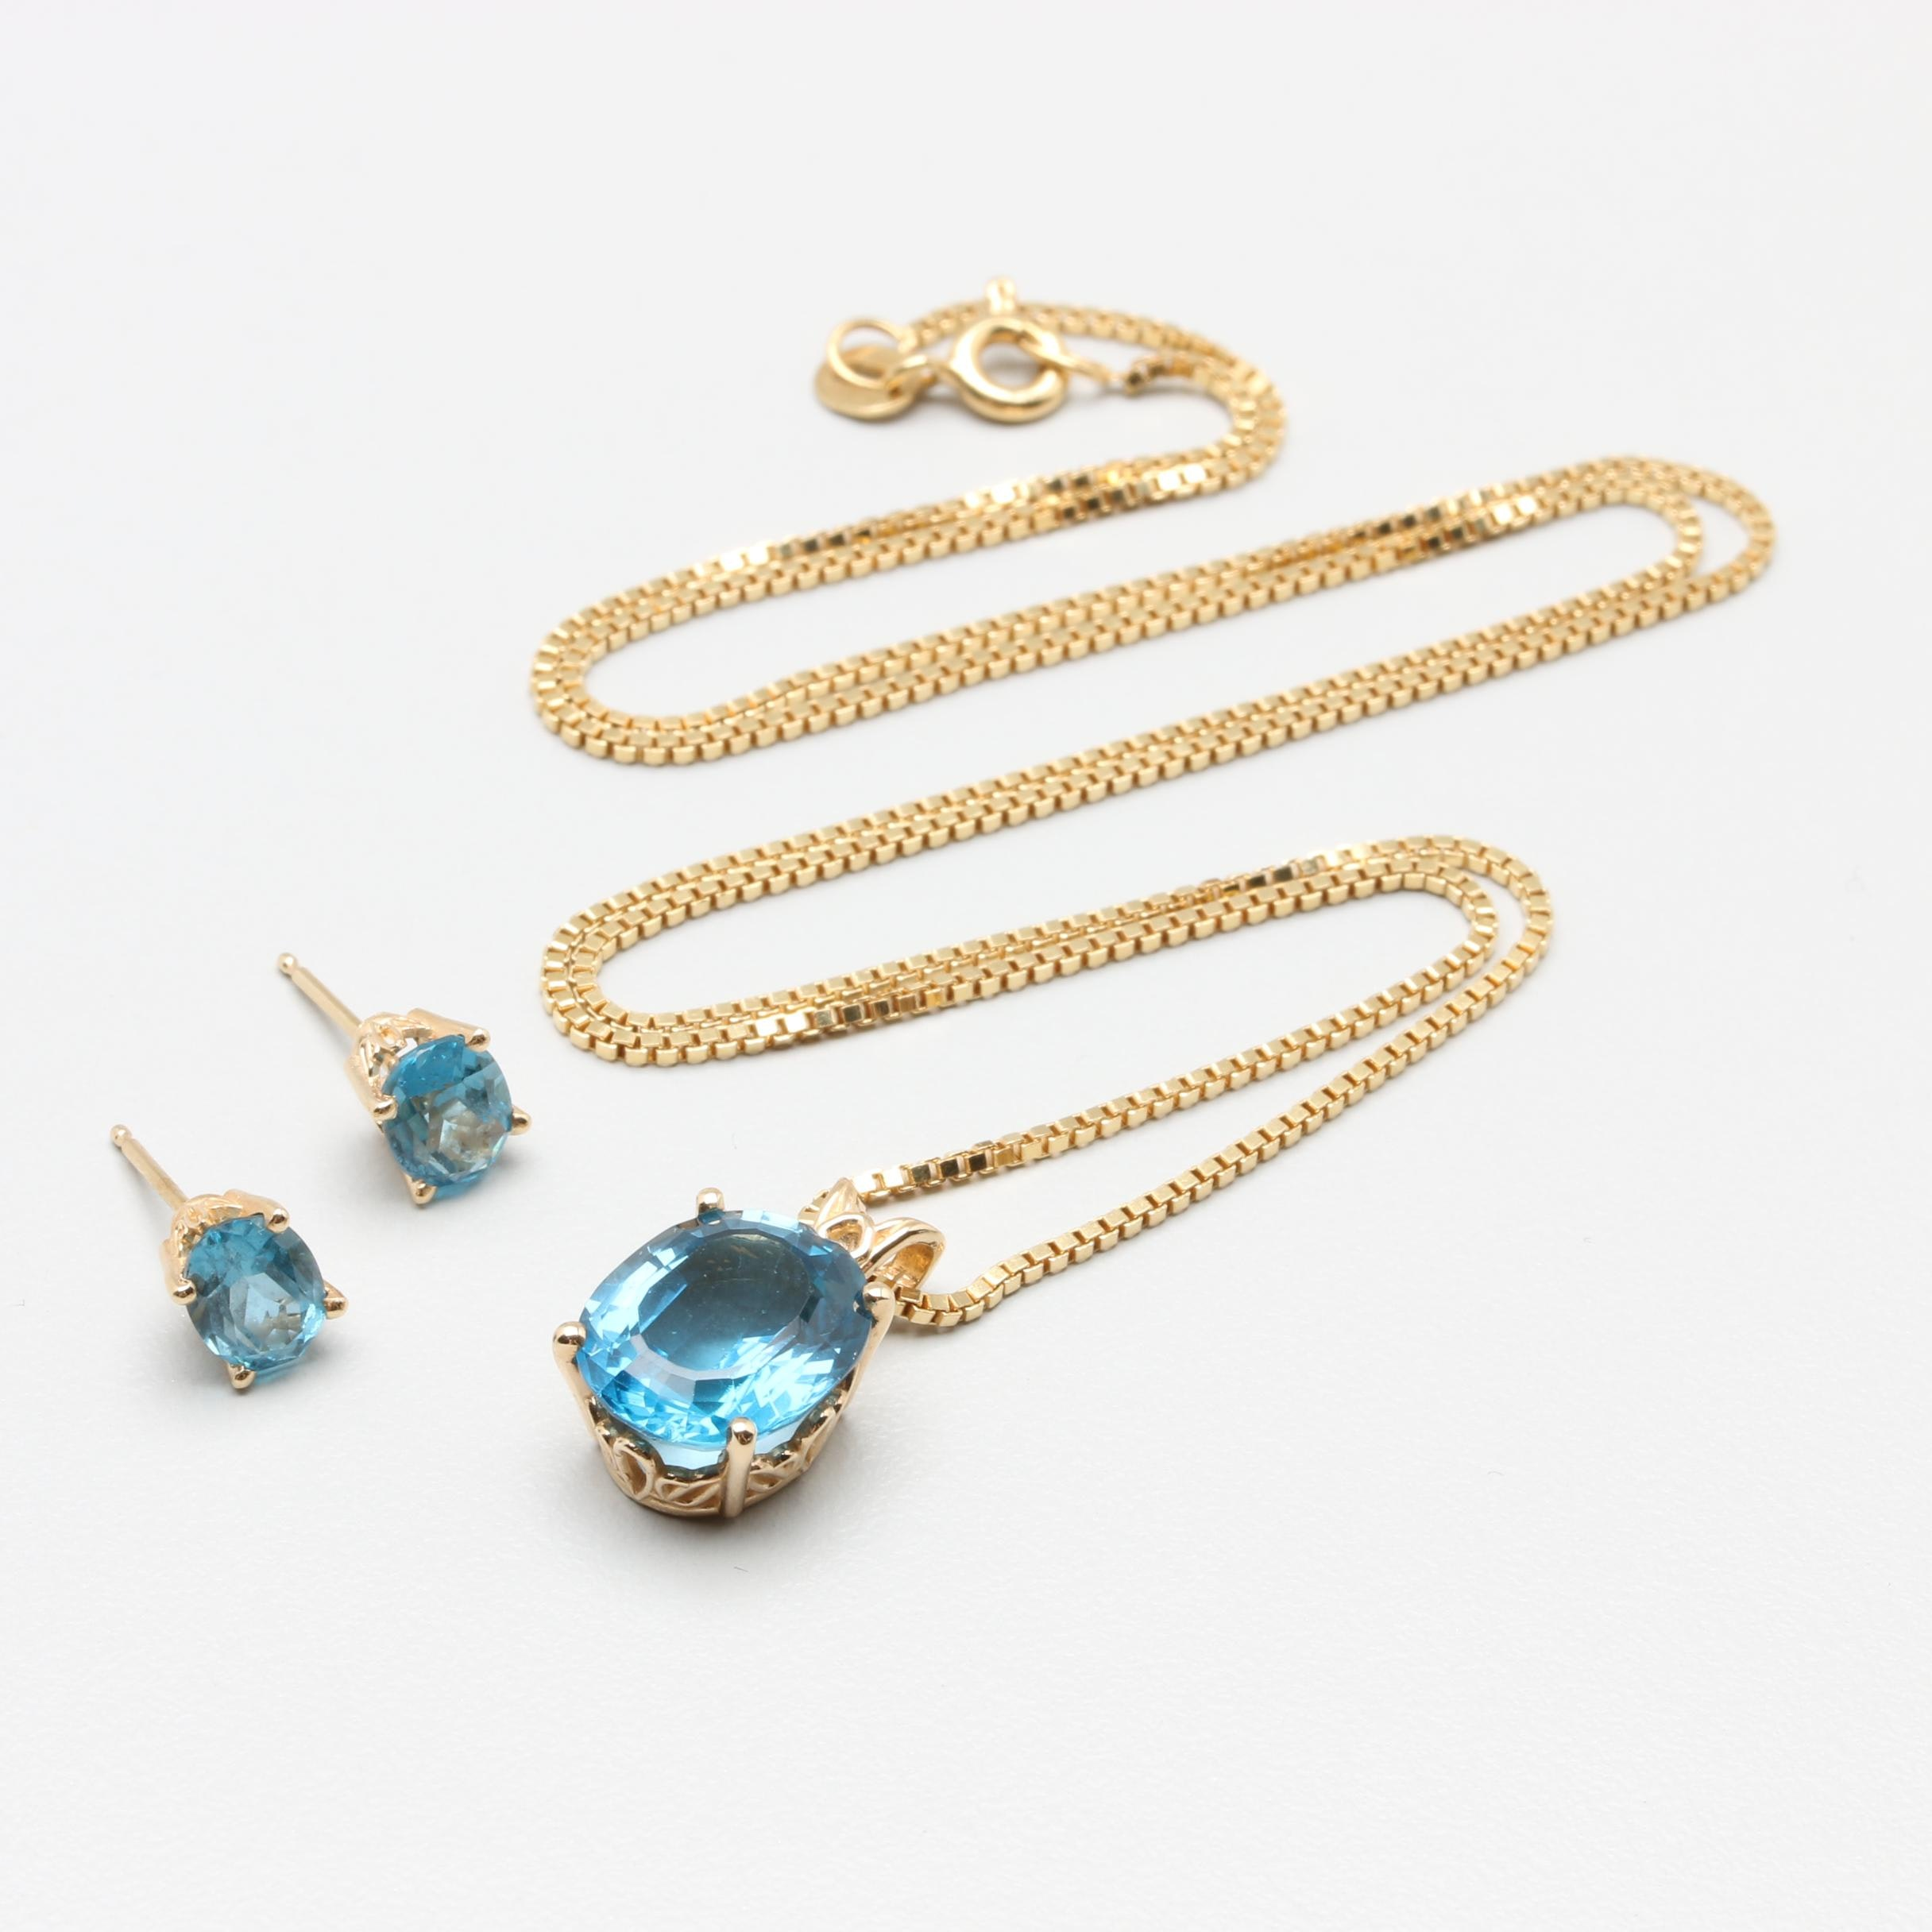 14K and 18K Yellow Gold Blue Topaz Demi Parure